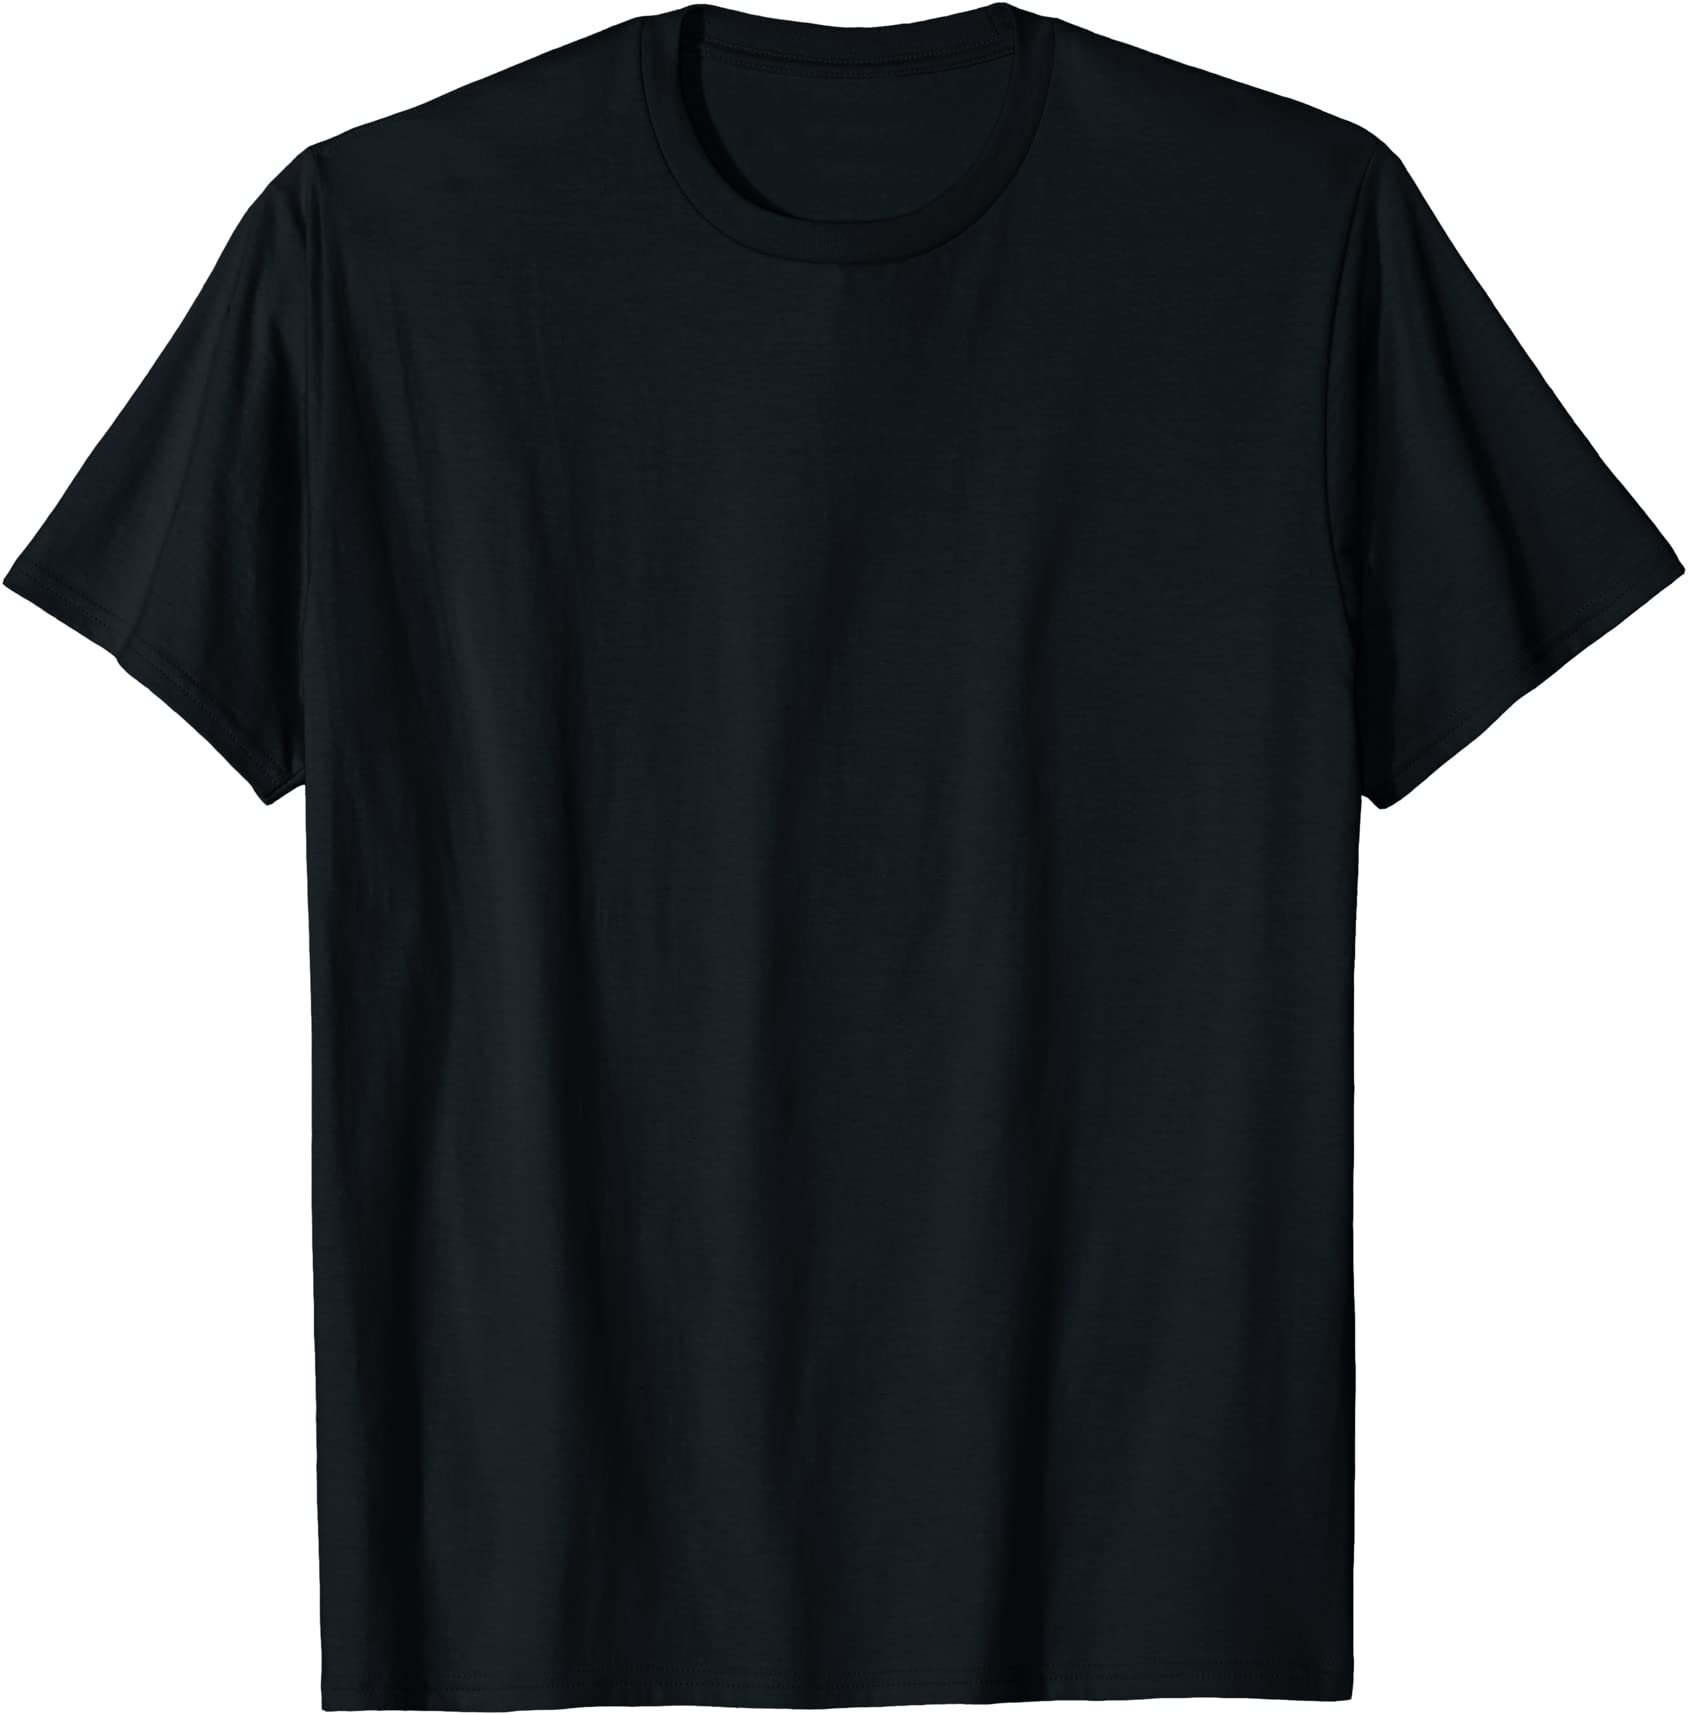 Buy The Dip T-Shirt 6 colours cryptocurrency BTC ETH Crypto Don/'t Panic